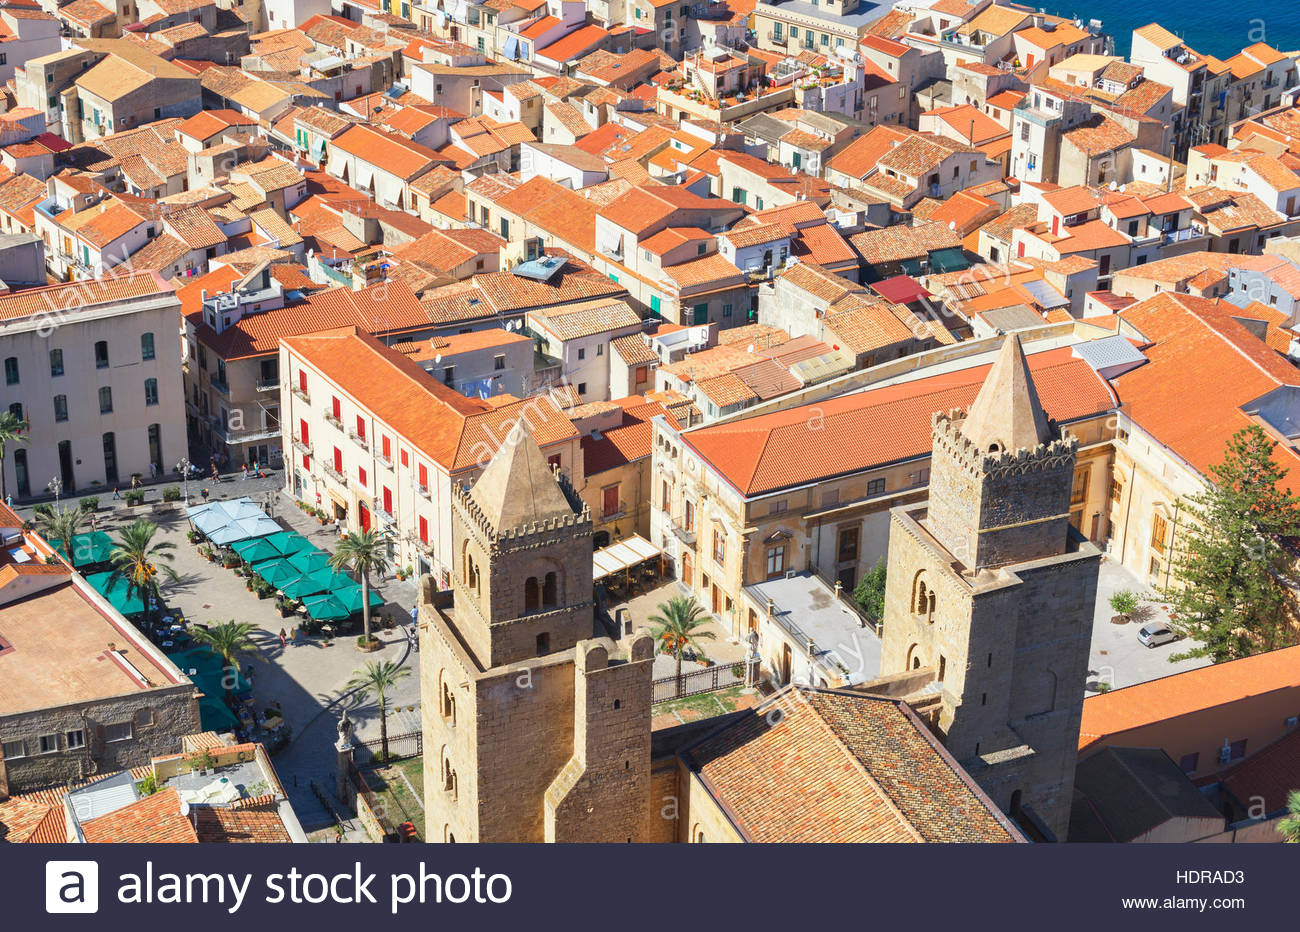 Cathedral San Salvatore, Piazza Duomo, Cefalu, Sicily, Italy, Europe - Stock Image